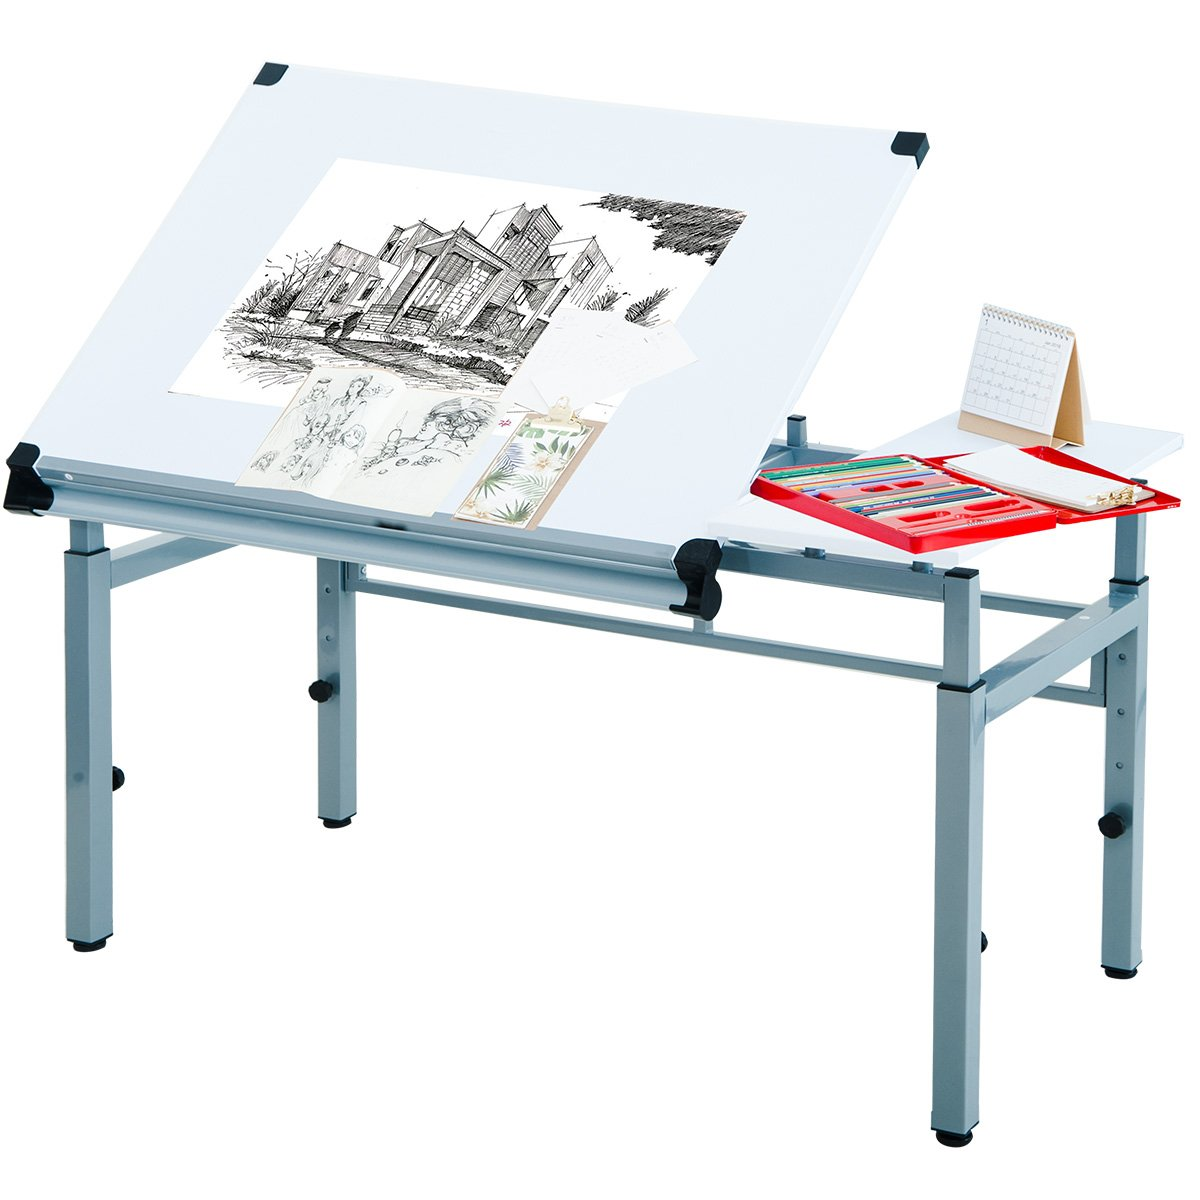 Harper&Bright Designs Drafting and Hobby Table Drawing Desk with Folding Top and Adjustable legs (White)